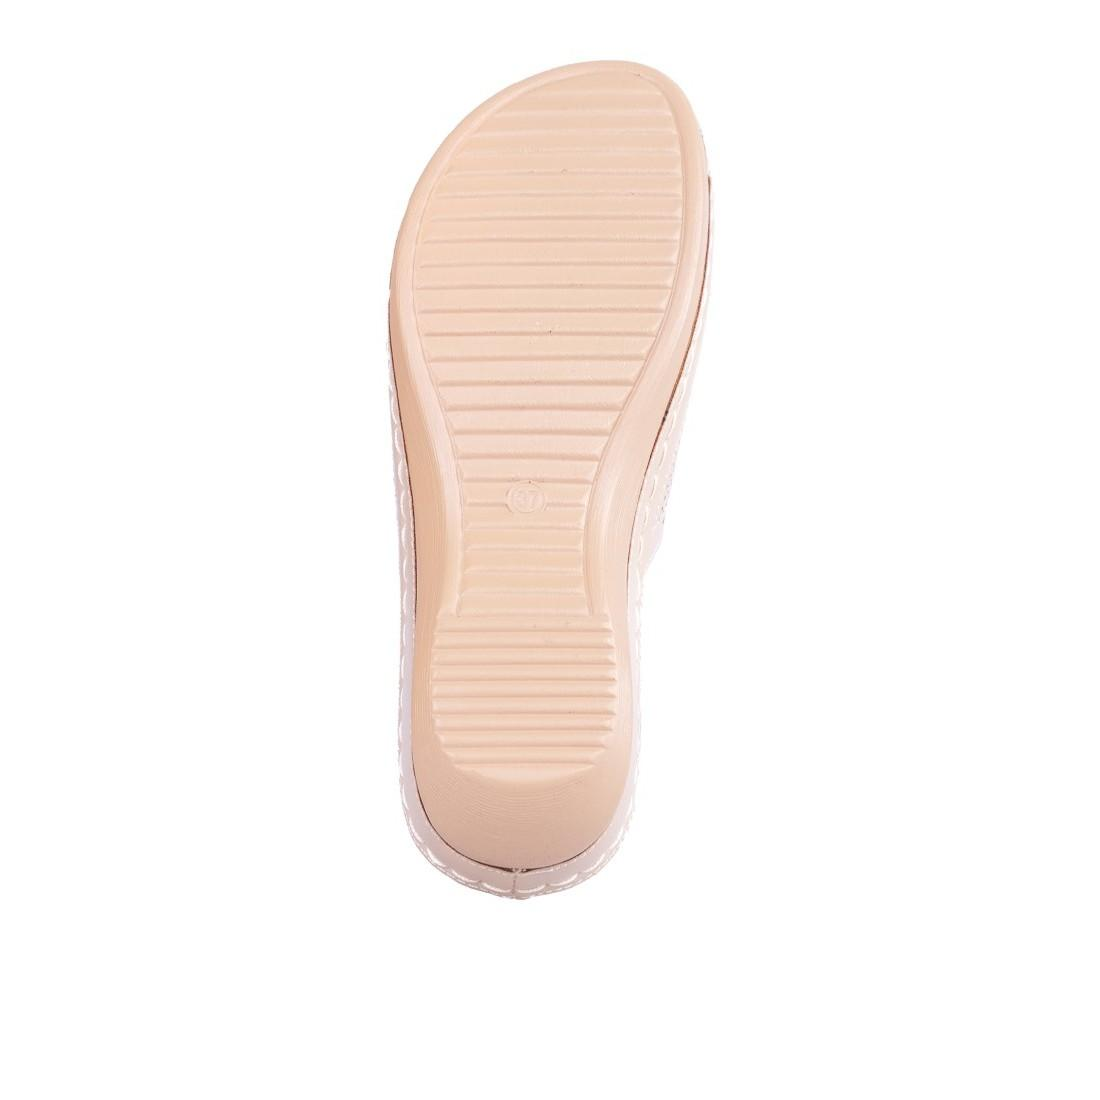 ... Bettina Sandal Nala - Beige - 5